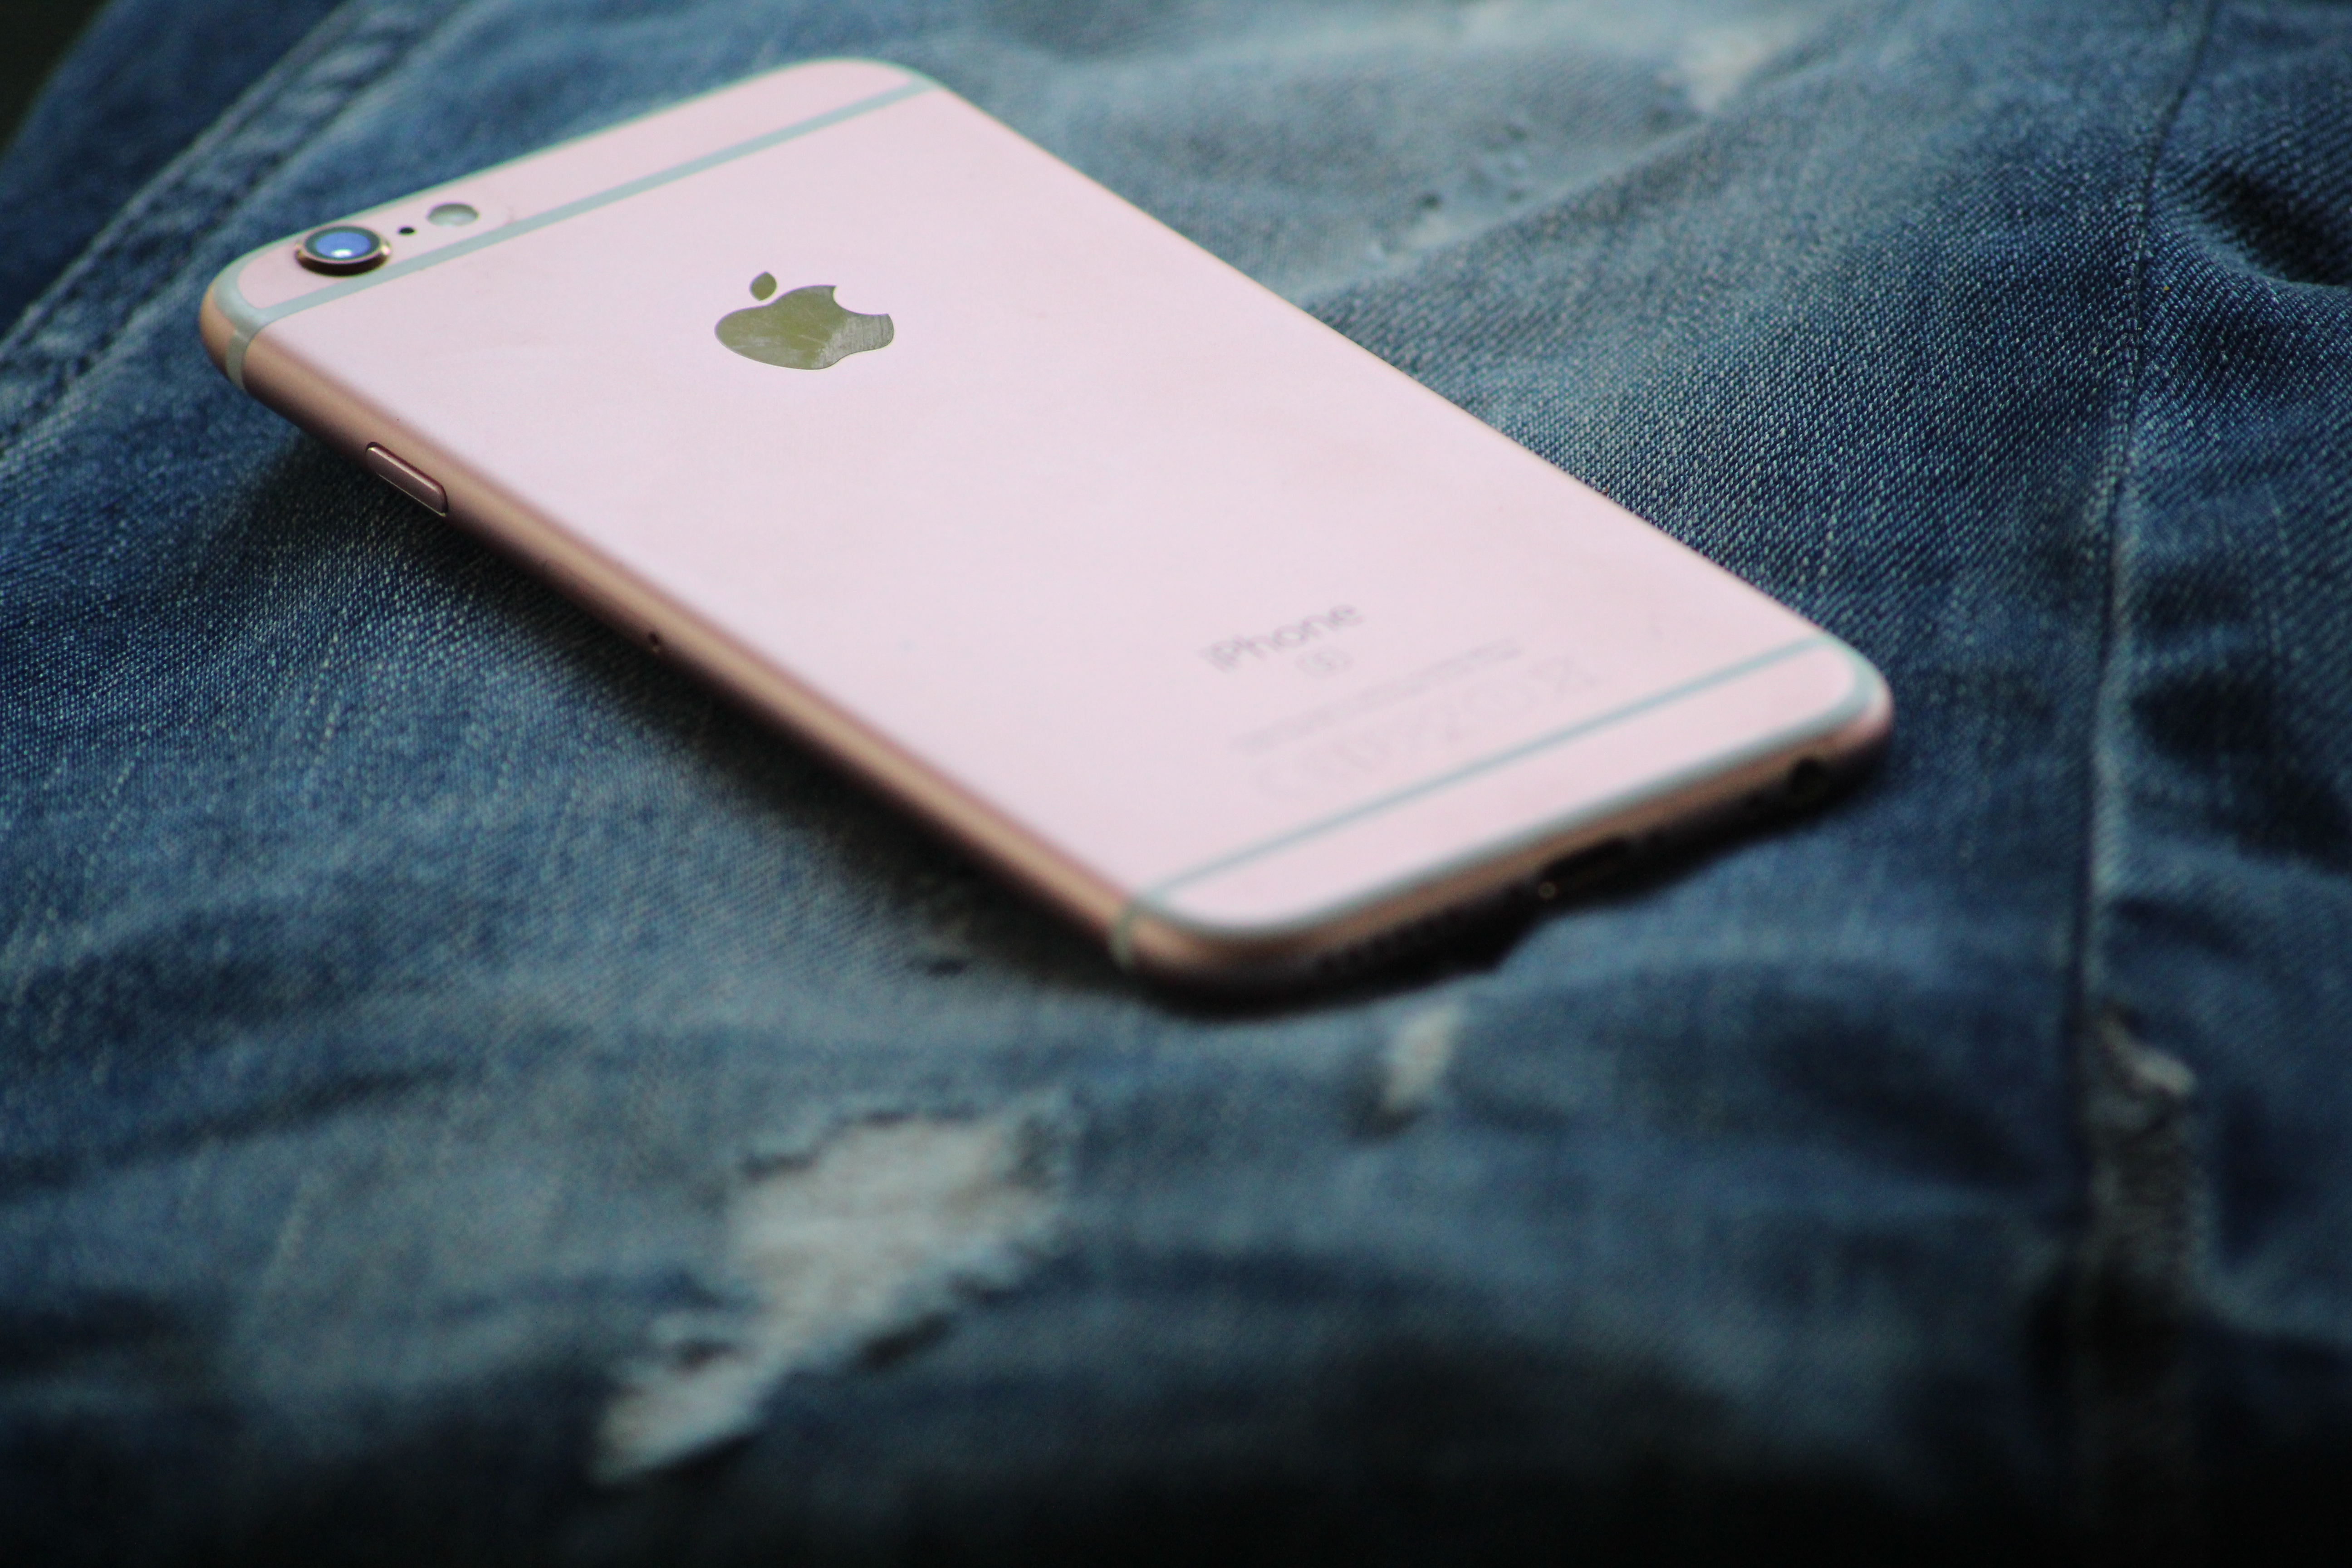 Close-Up Photography of Rose Gold Iphone 6s on Top of Blue Denim Jeans